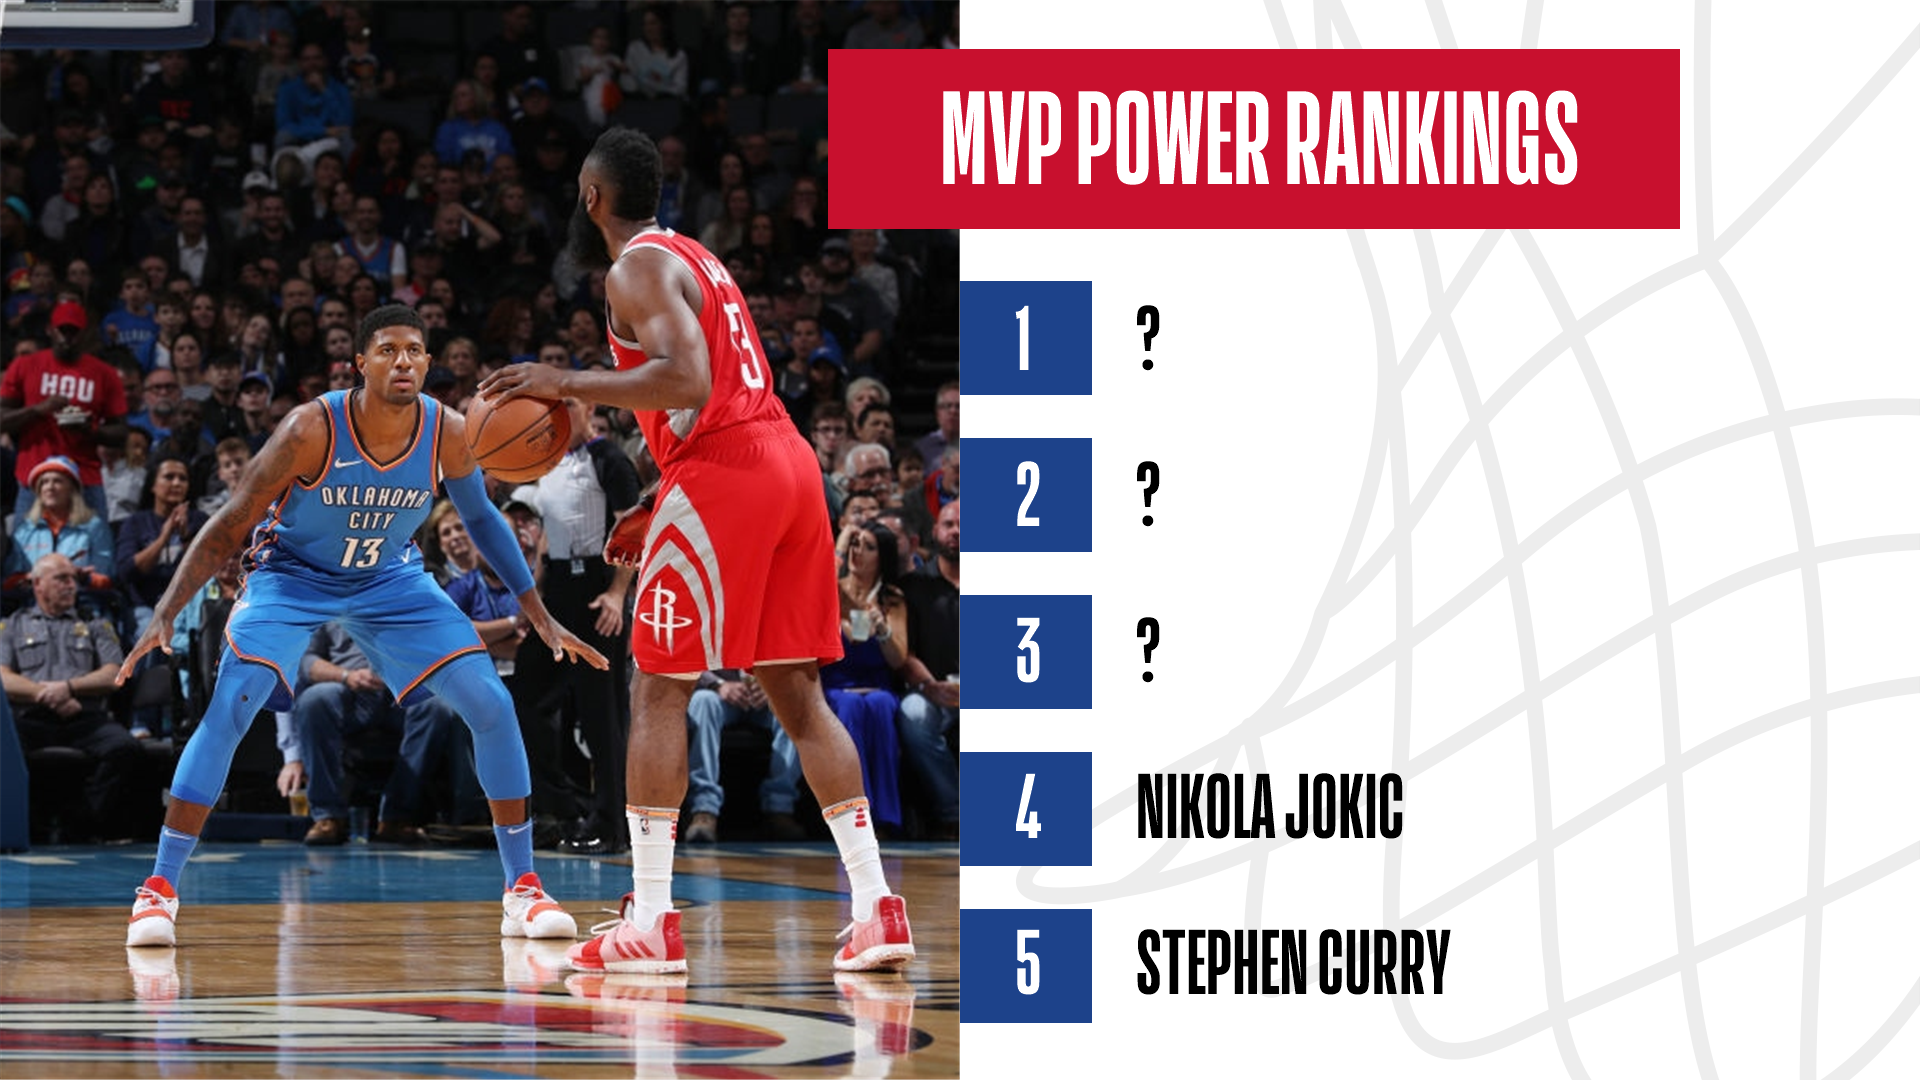 daf9f8a24ad2 MVP NBA Power Rankings  Paul George enters the debate with Giannis  Antetokounmpo and James Harden